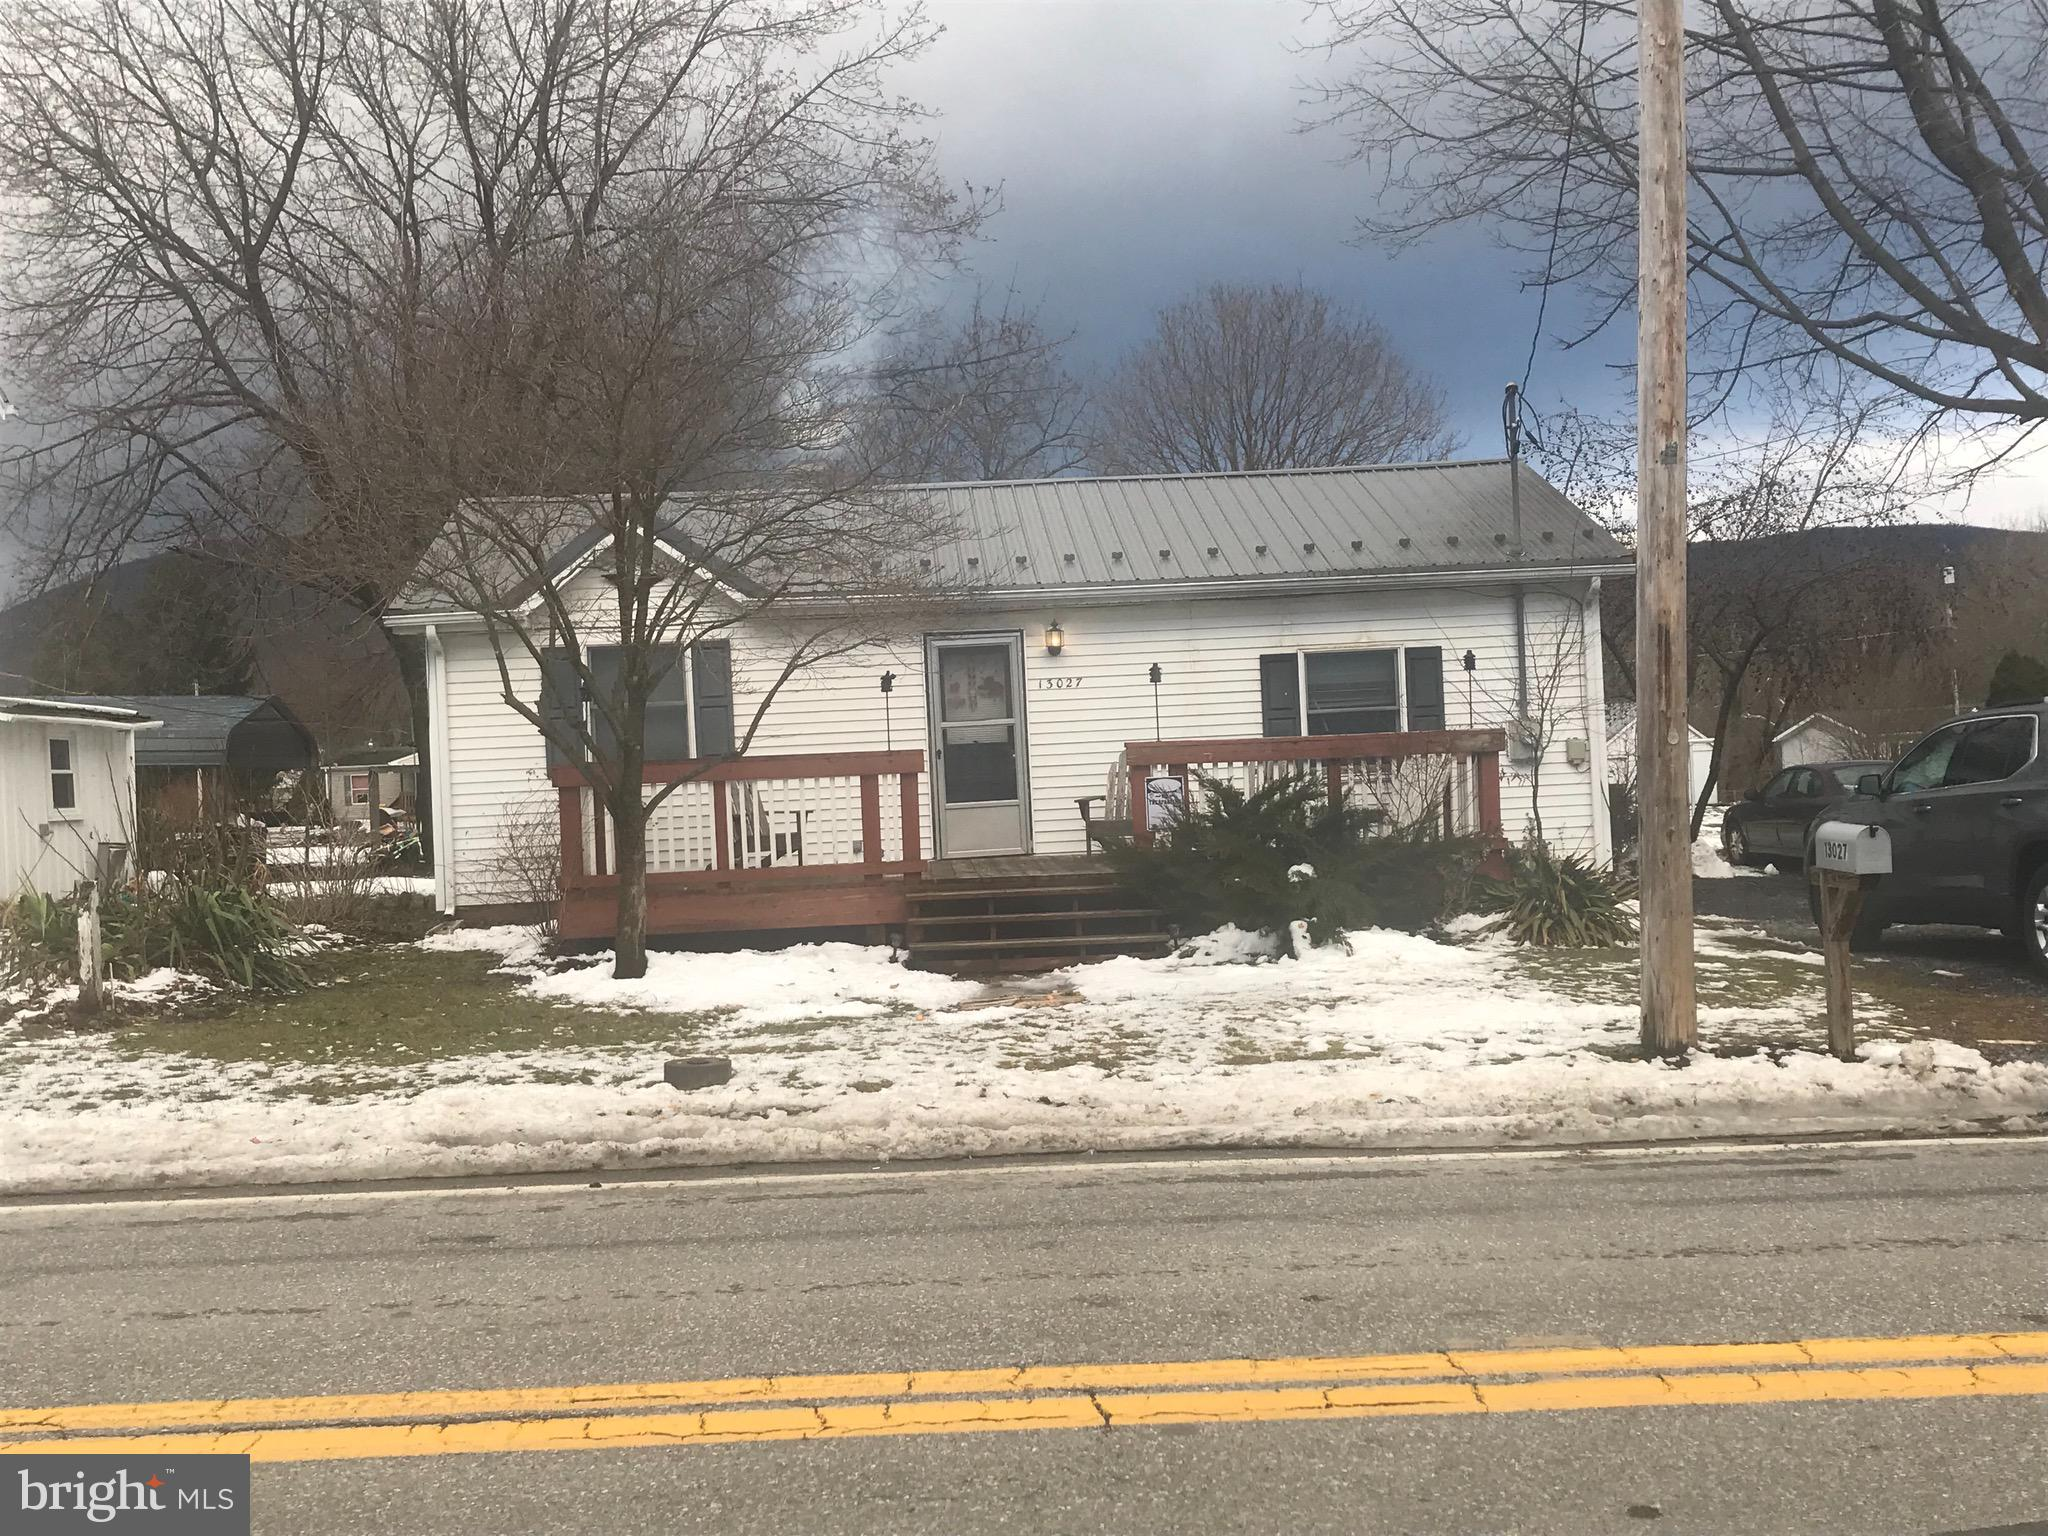 13027 MAIN STREET, FORT LOUDON, PA 17224